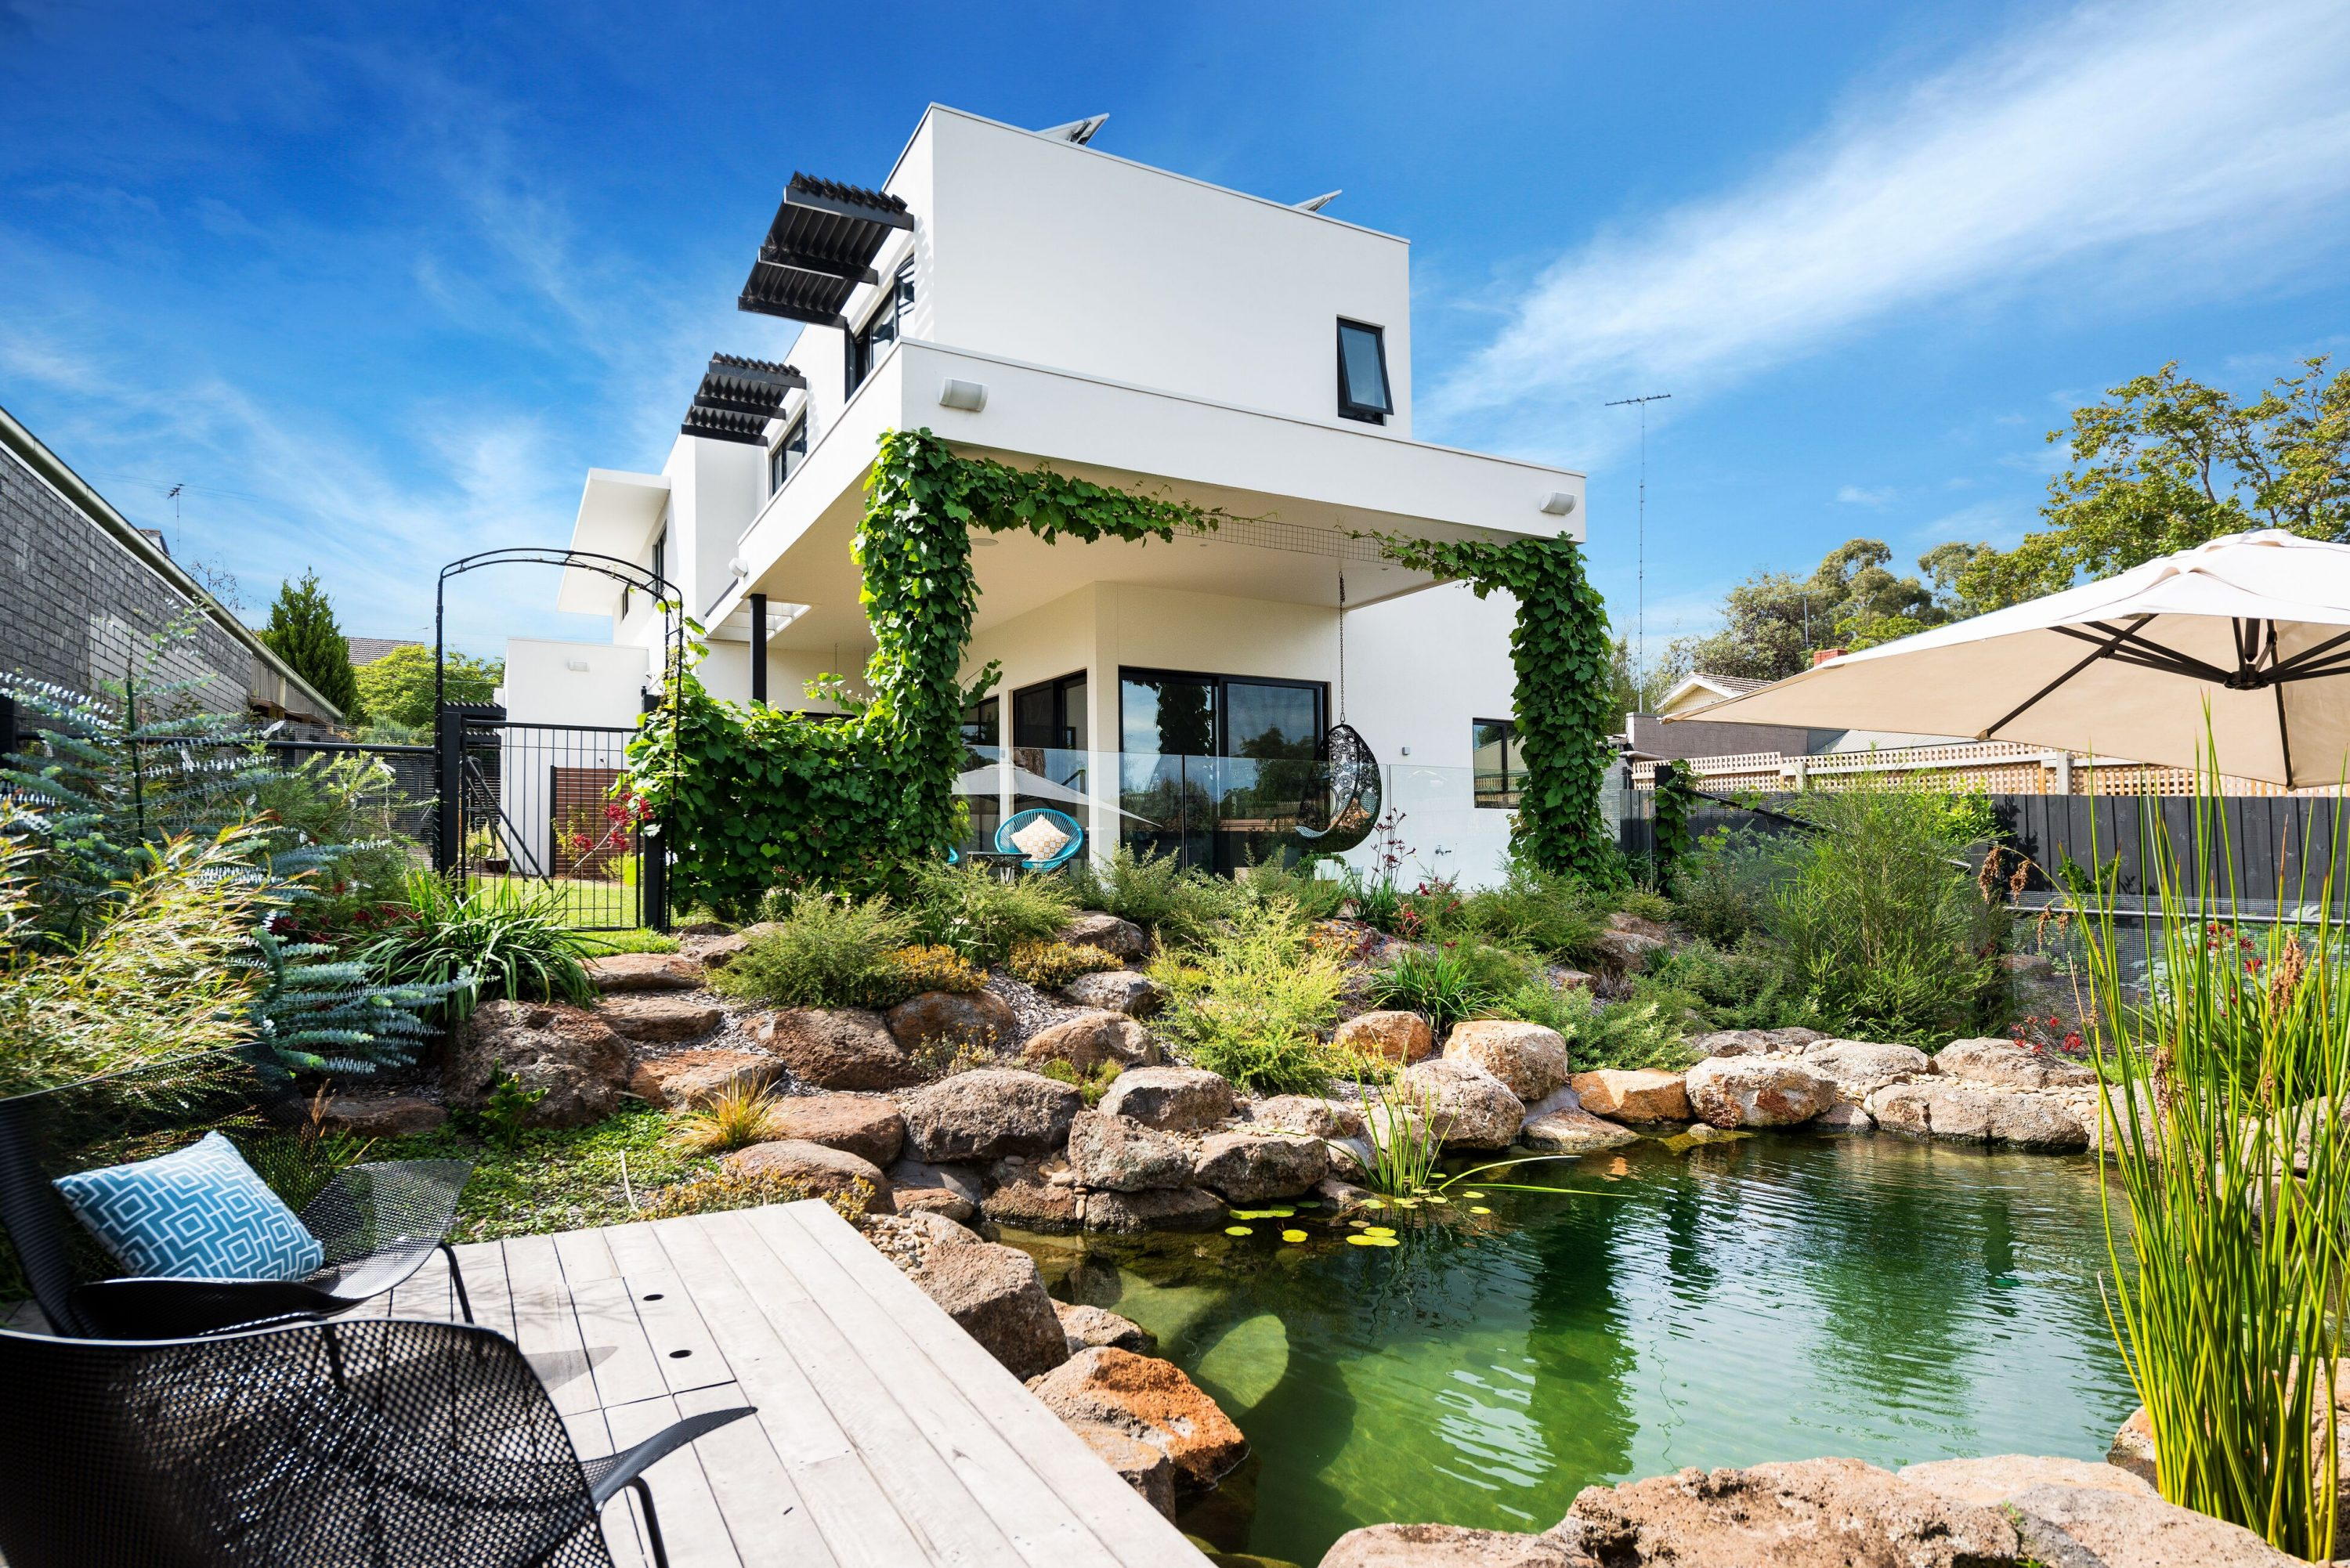 House Tour: This Sustainable Home Has Its Own Billabong